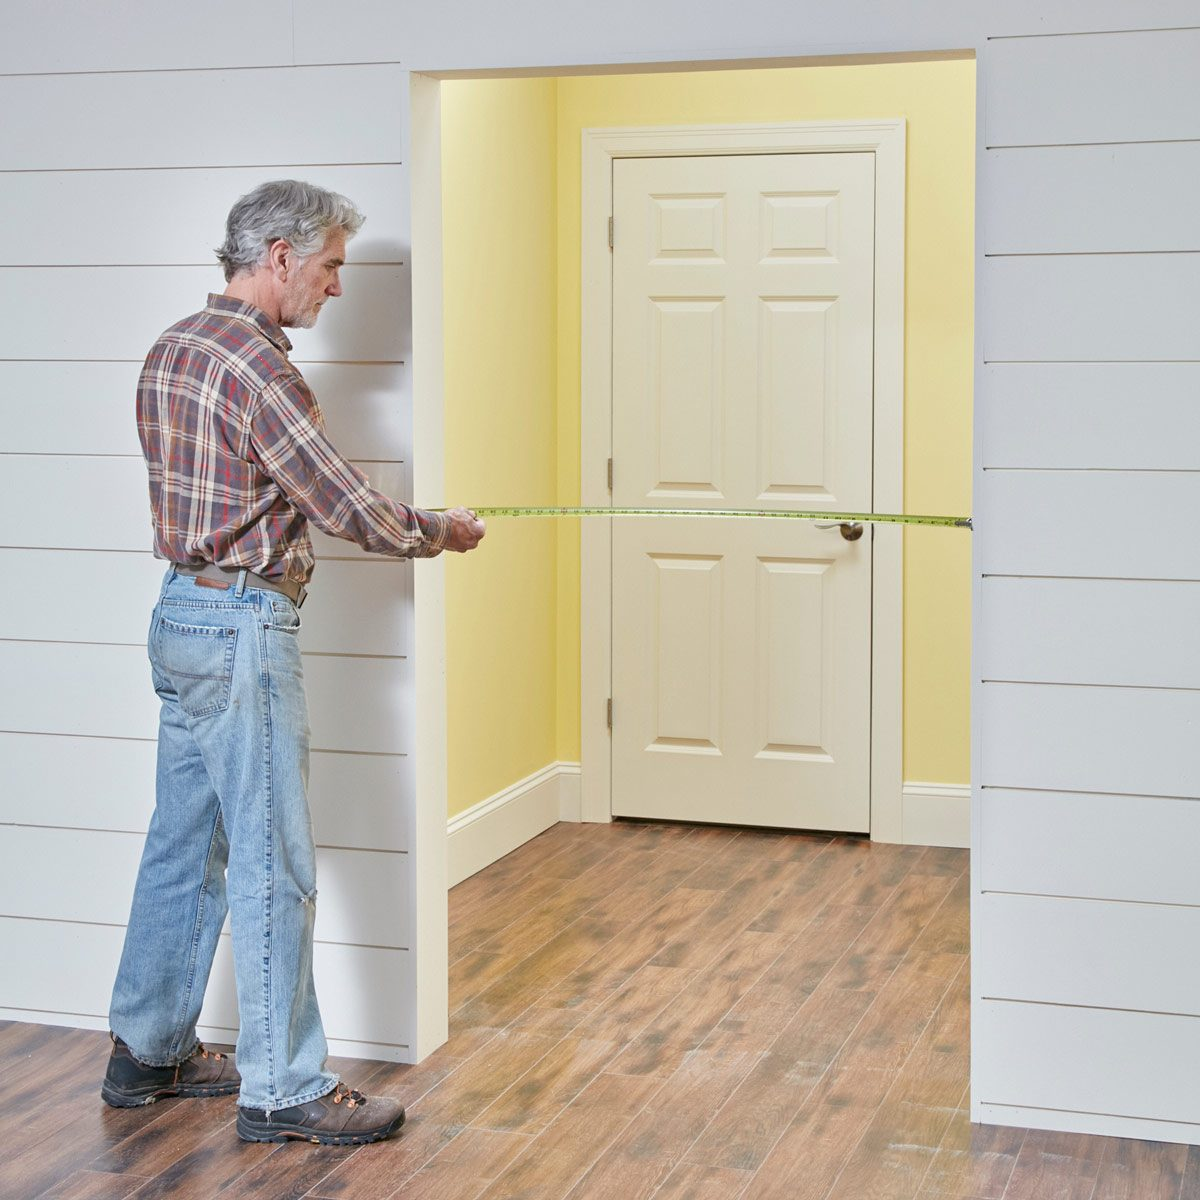 measure barn door opening